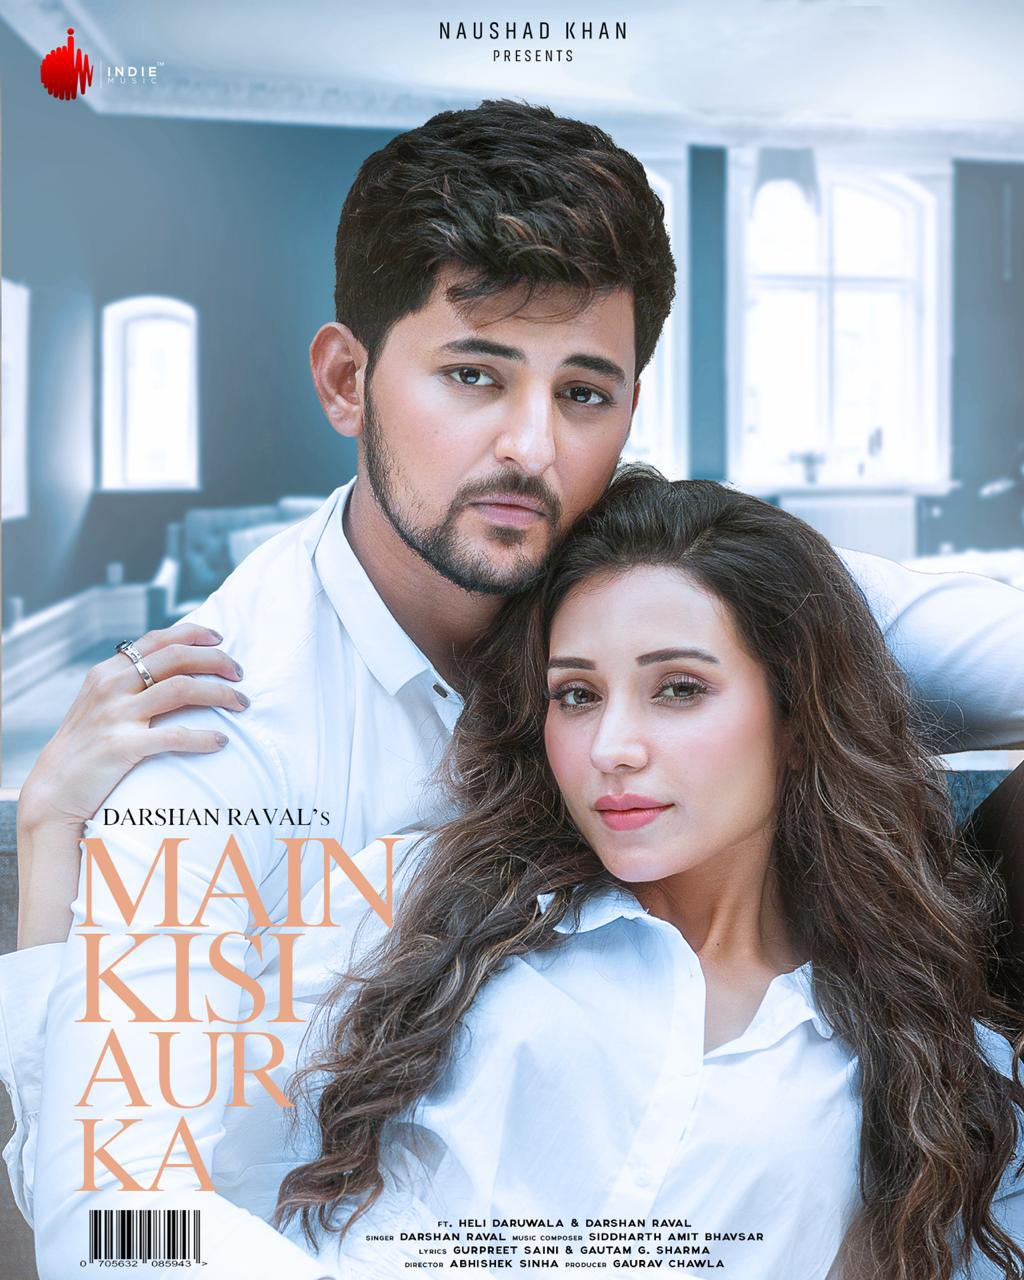 Main Kisi Aur Ka By Darshan Raval Official Music Video 1080p HDRip 71MB Download